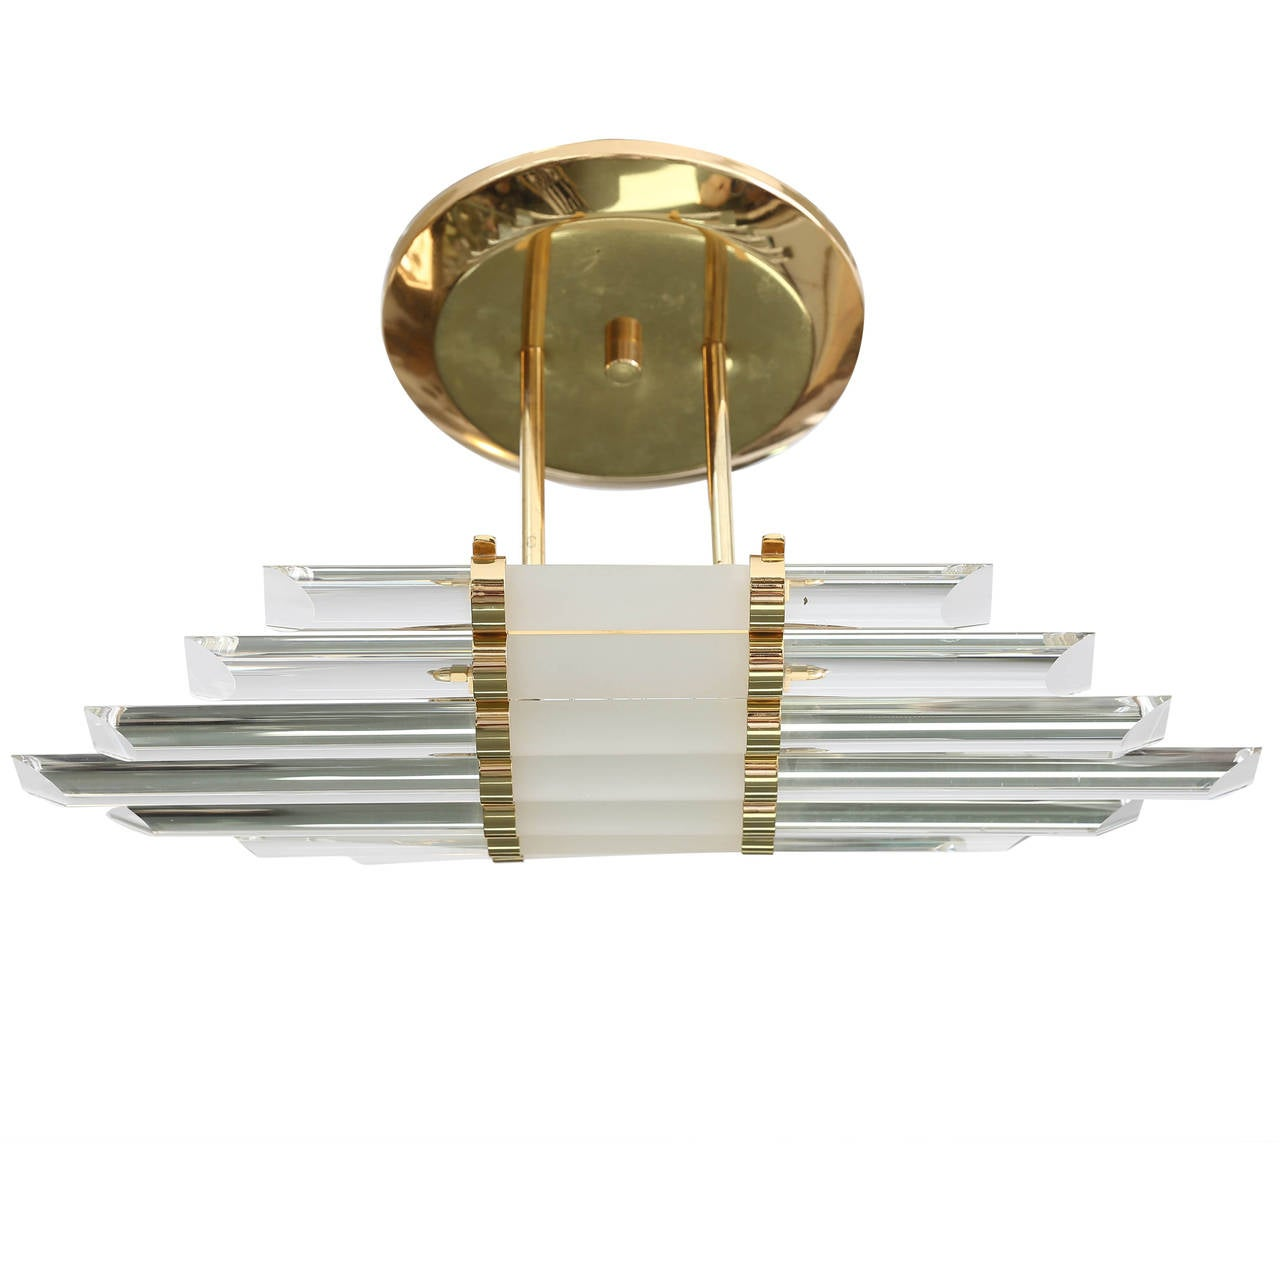 Glass Rod Wall Sconces : Mid-Century Skyscraper Glass Rod Wall Sconces with Brass Fittings For Sale at 1stdibs